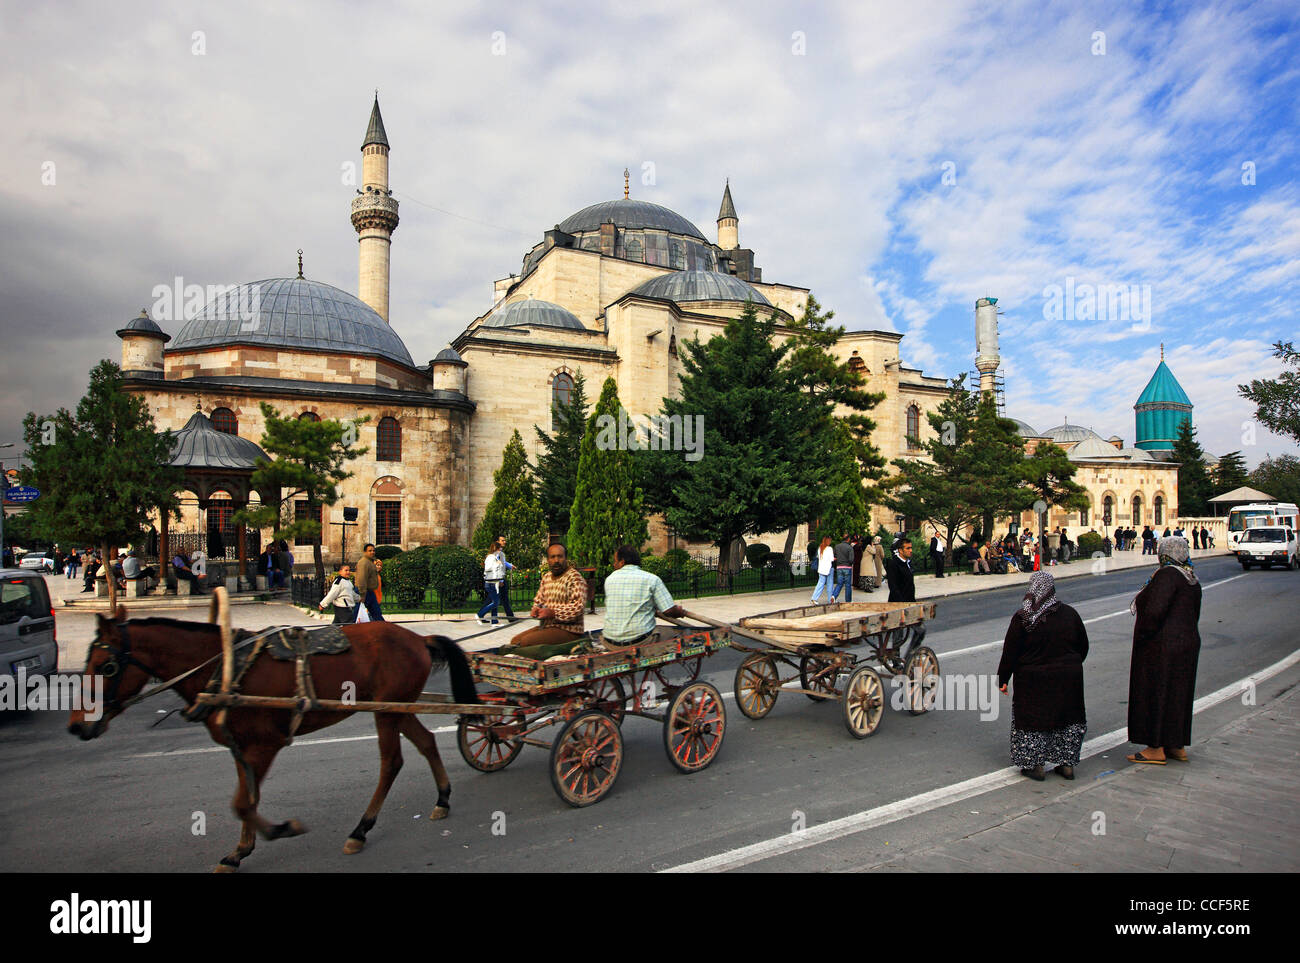 The Selimiye Camii (mosque), to the left and the turquoise dome of the Mevlana museum, Konya, Anatolia, Turkey - Stock Image